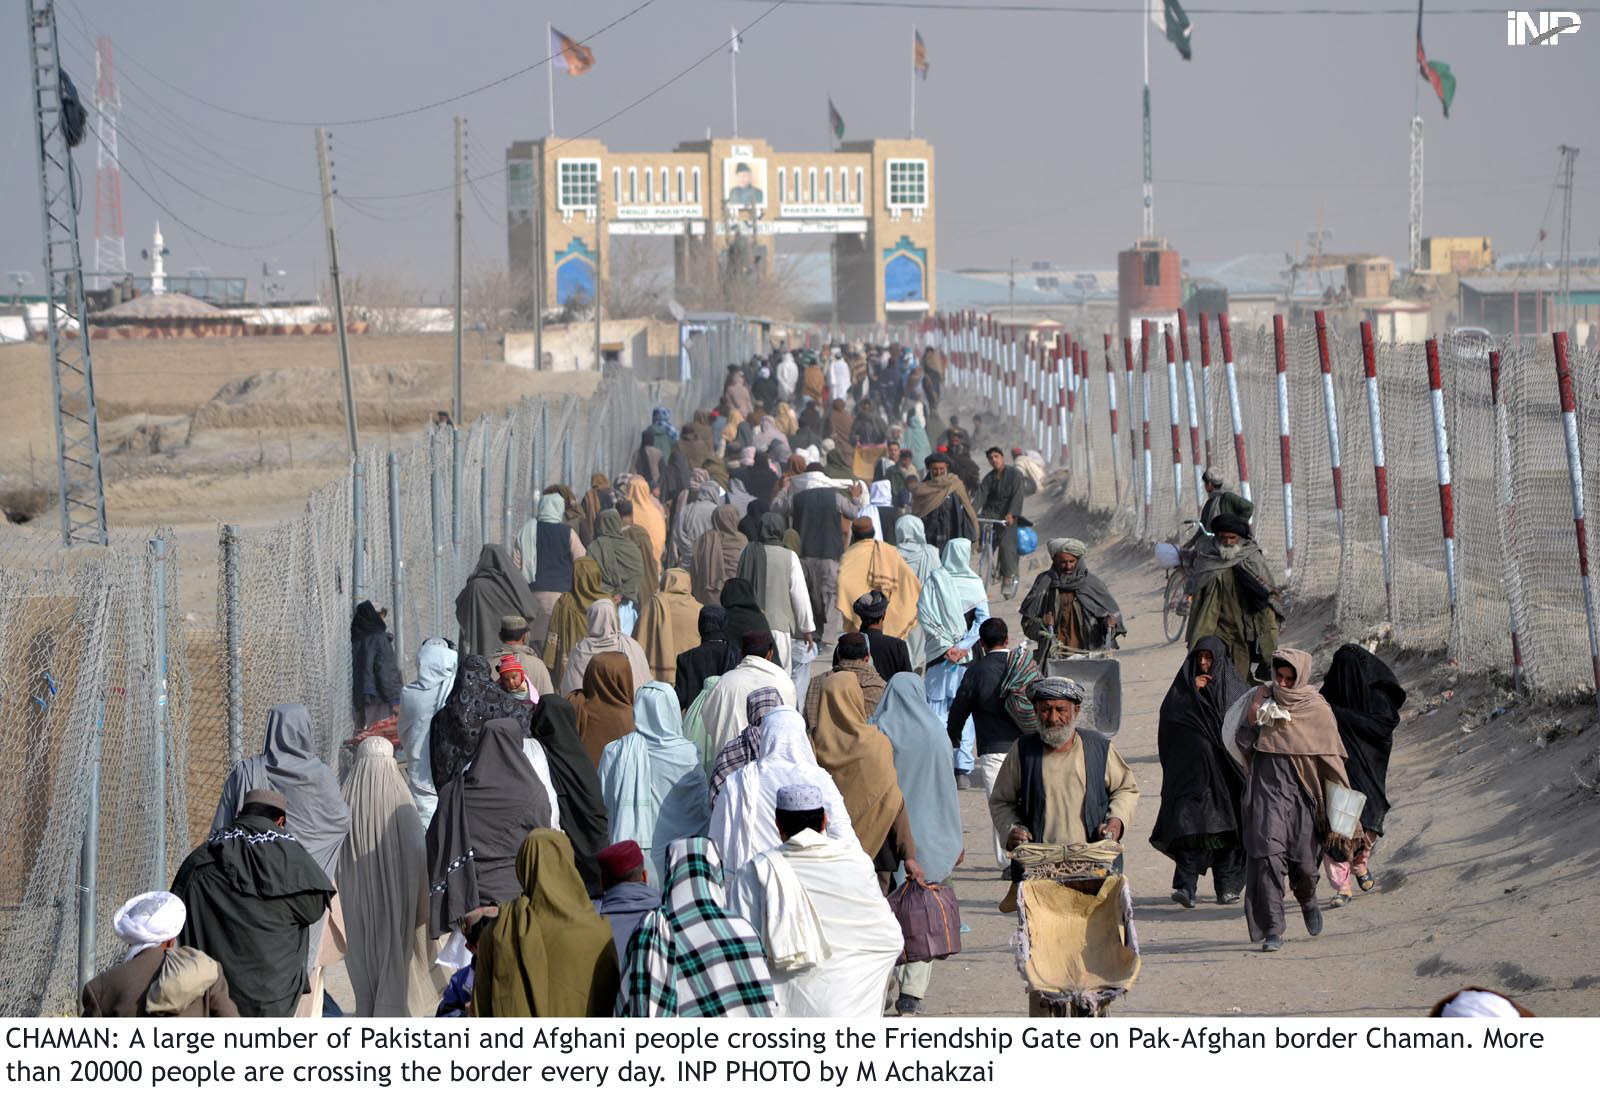 in total 17 unregistered afghan seminary students have been repatriated from swabi over the last two days two students were sent back on sunday for not having proper immigration documents whereas 15 students of darul uloom taleemul quran shah mansoor were repatriated on sunday photo inp